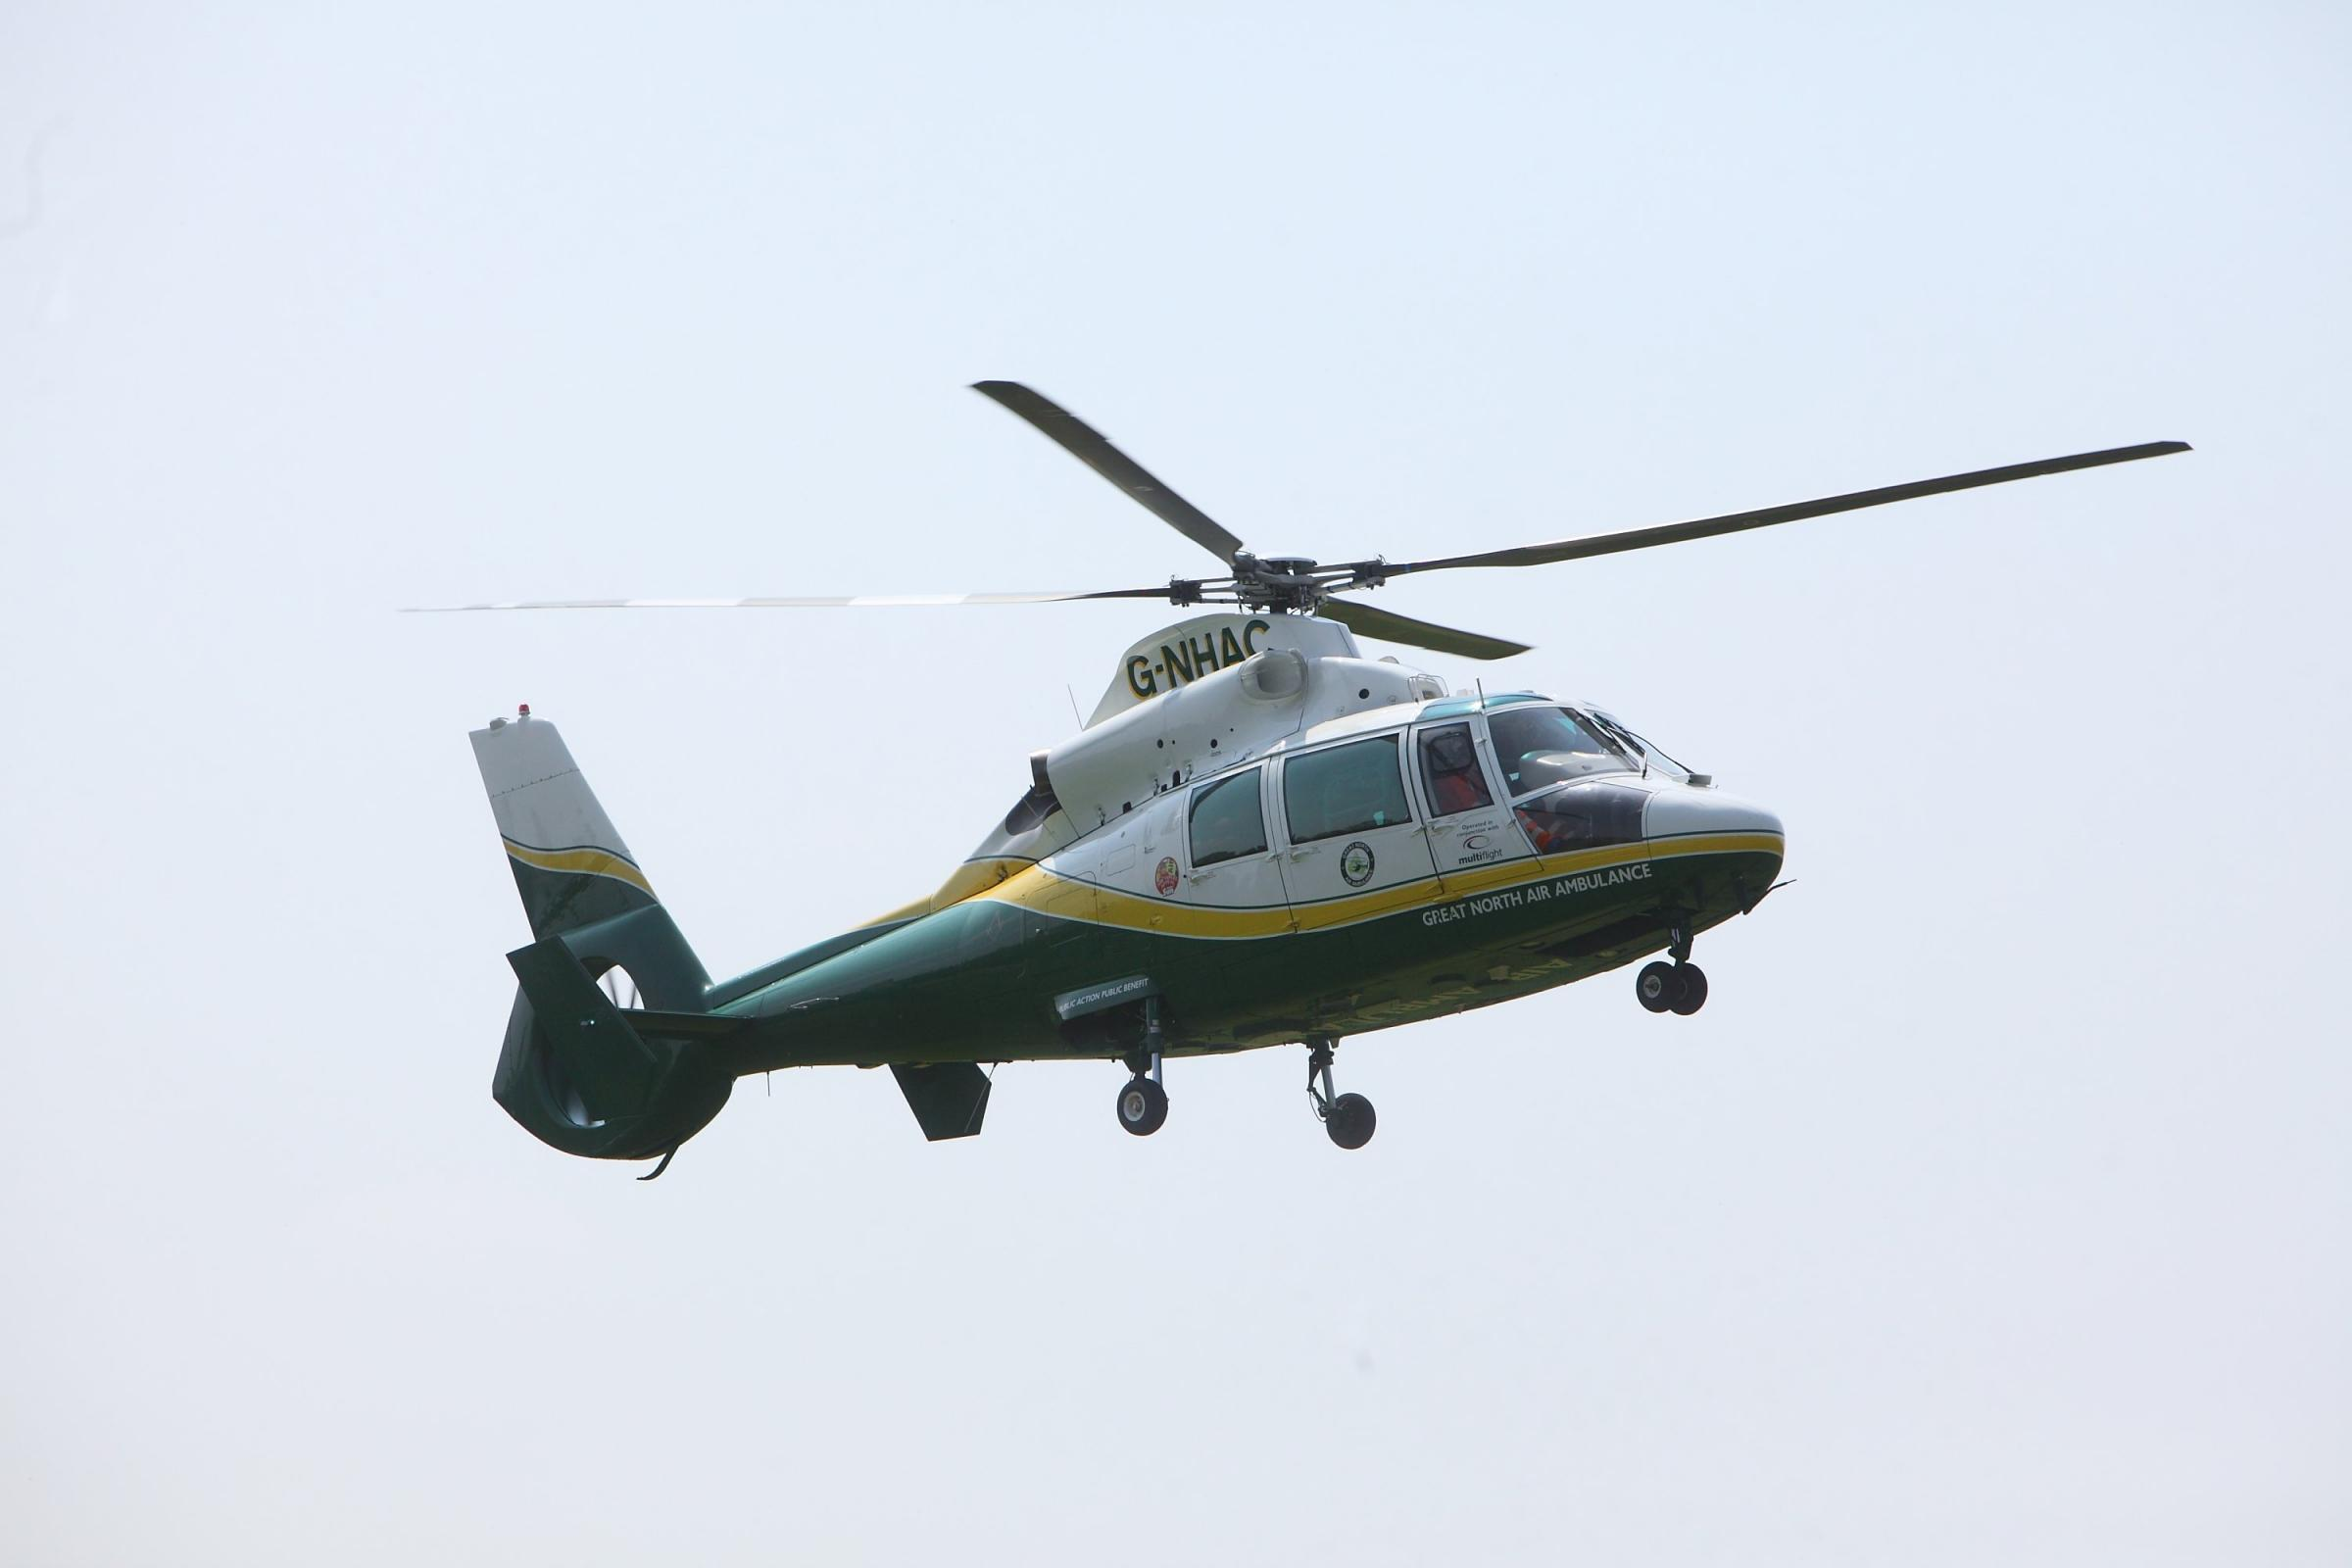 Burns victim airlifted to hospital